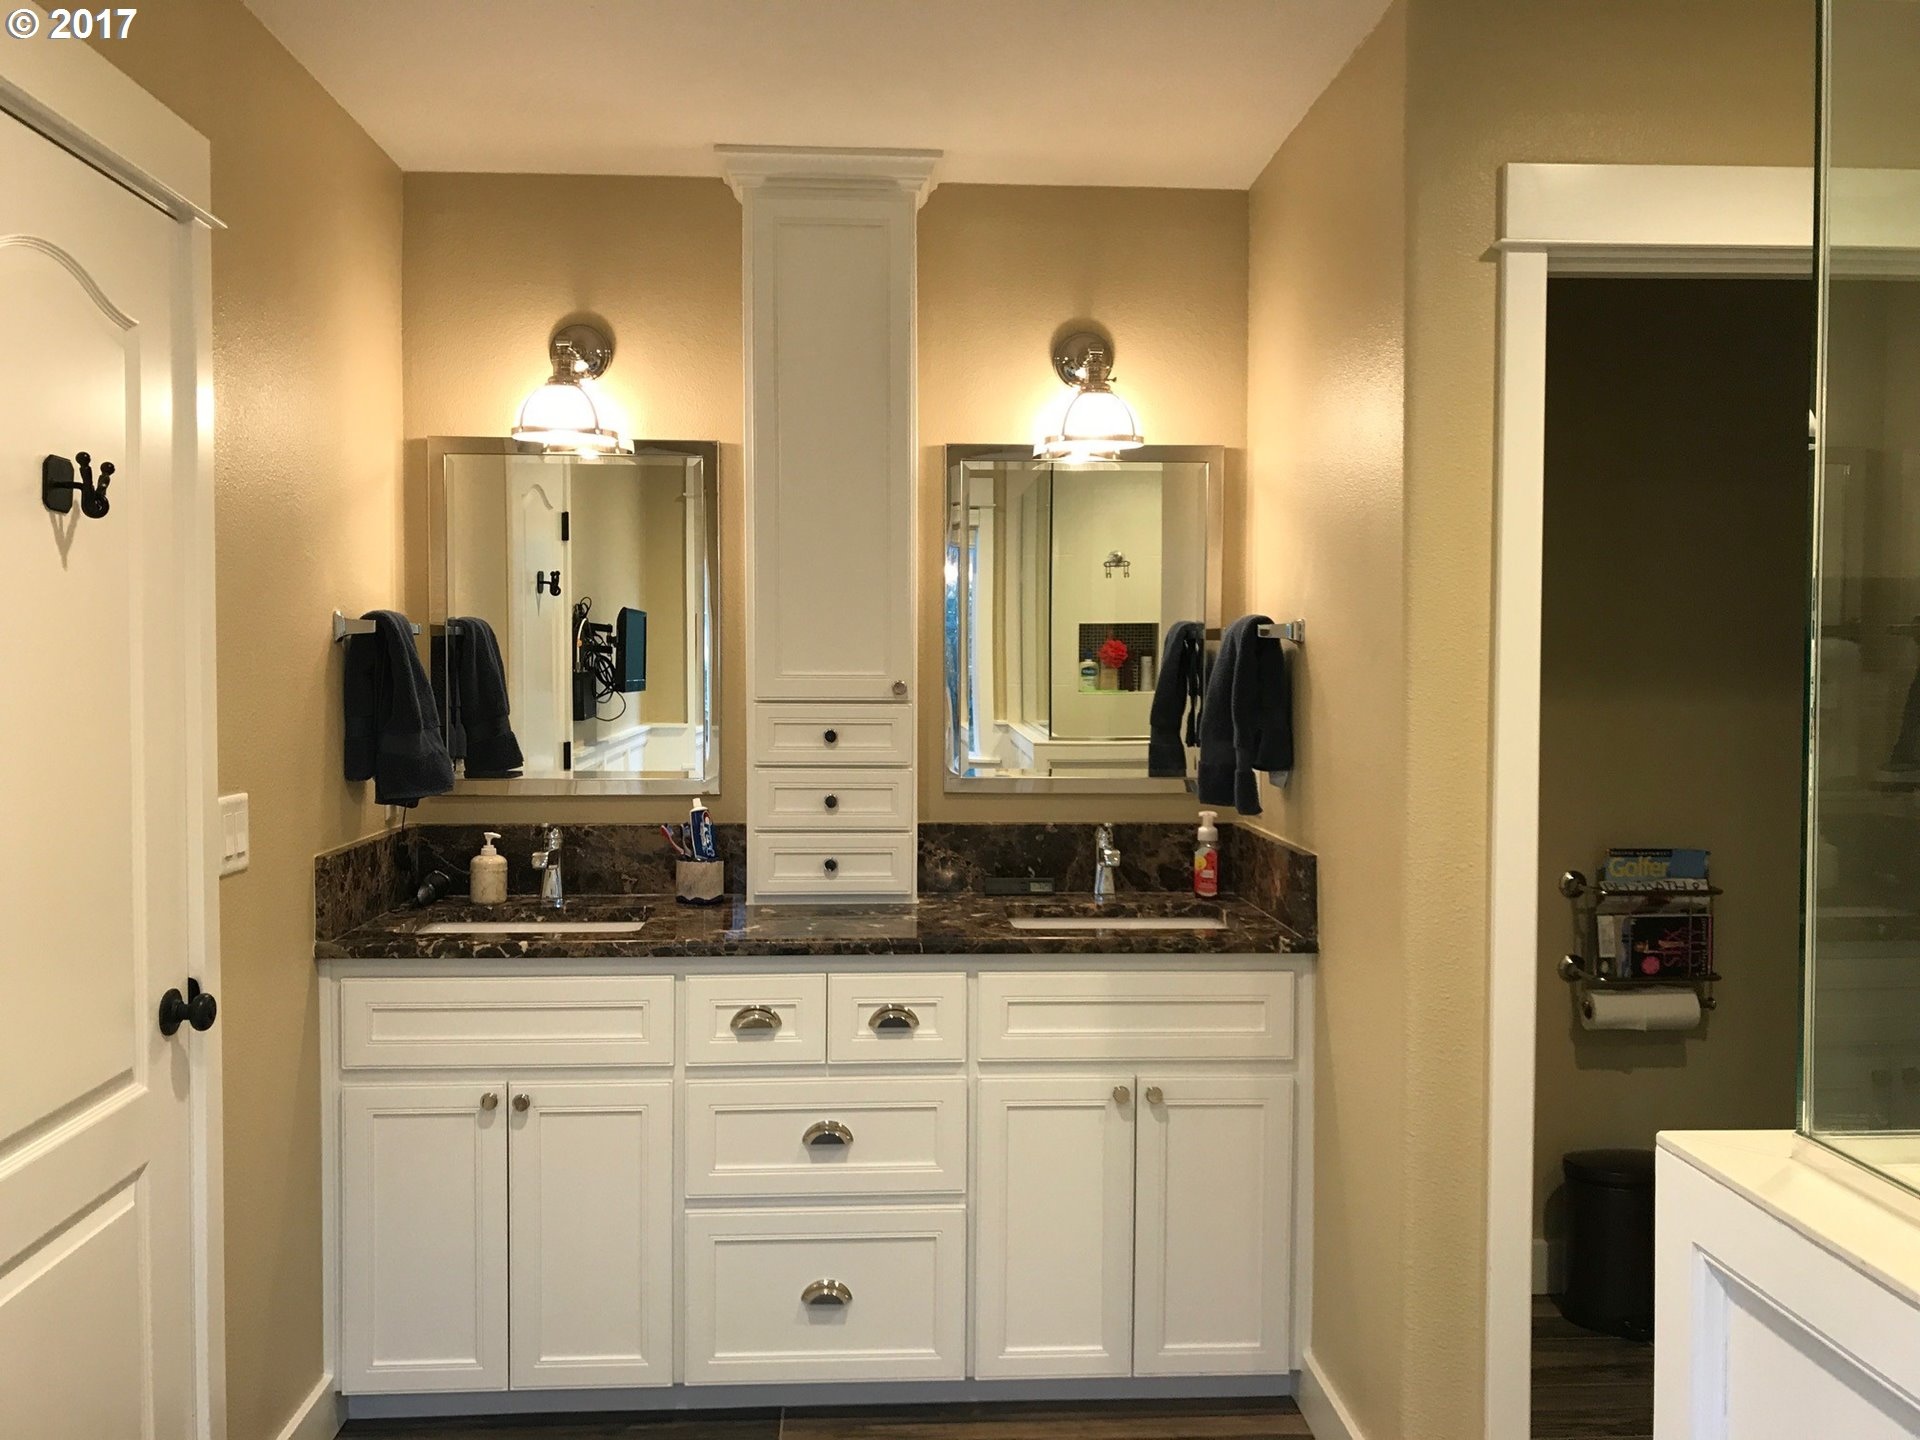 12285 SW WHISTLERS LN Tigard, OR 97223 - MLS #: 17530289